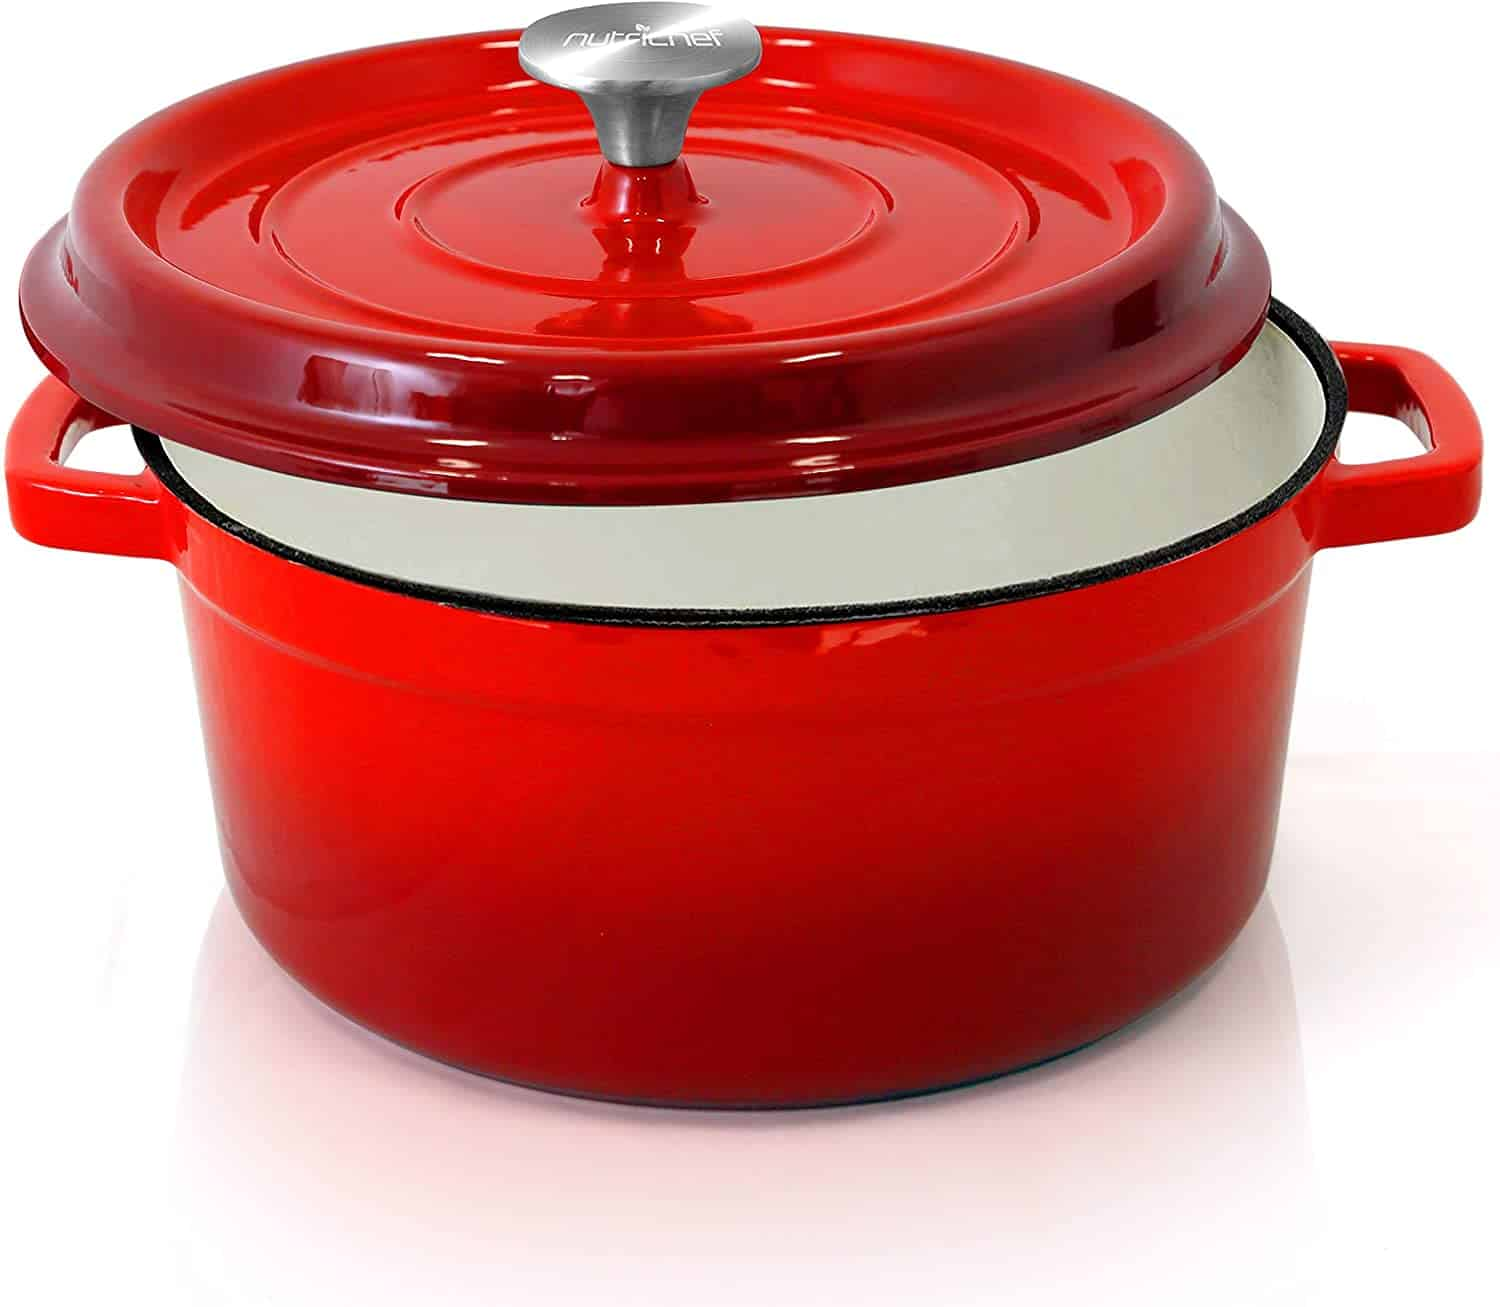 NutriChef Enameled Cast Iron Dutch Oven is the Best Dutch Oven in Singapore, 10 Best Dutch Ovens in Singapore Less Than $400, What are the top 5 Dutch ovens?, What are the top 10 Dutch ovens?, Why is Le Creuset the best Dutch oven?, Is it worth buying a Dutch oven?, The Best Dutch Ovens for Baking, Braising, and Stew, Can I use a crockpot instead of a Dutch oven?, Why are Dutch ovens so popular?